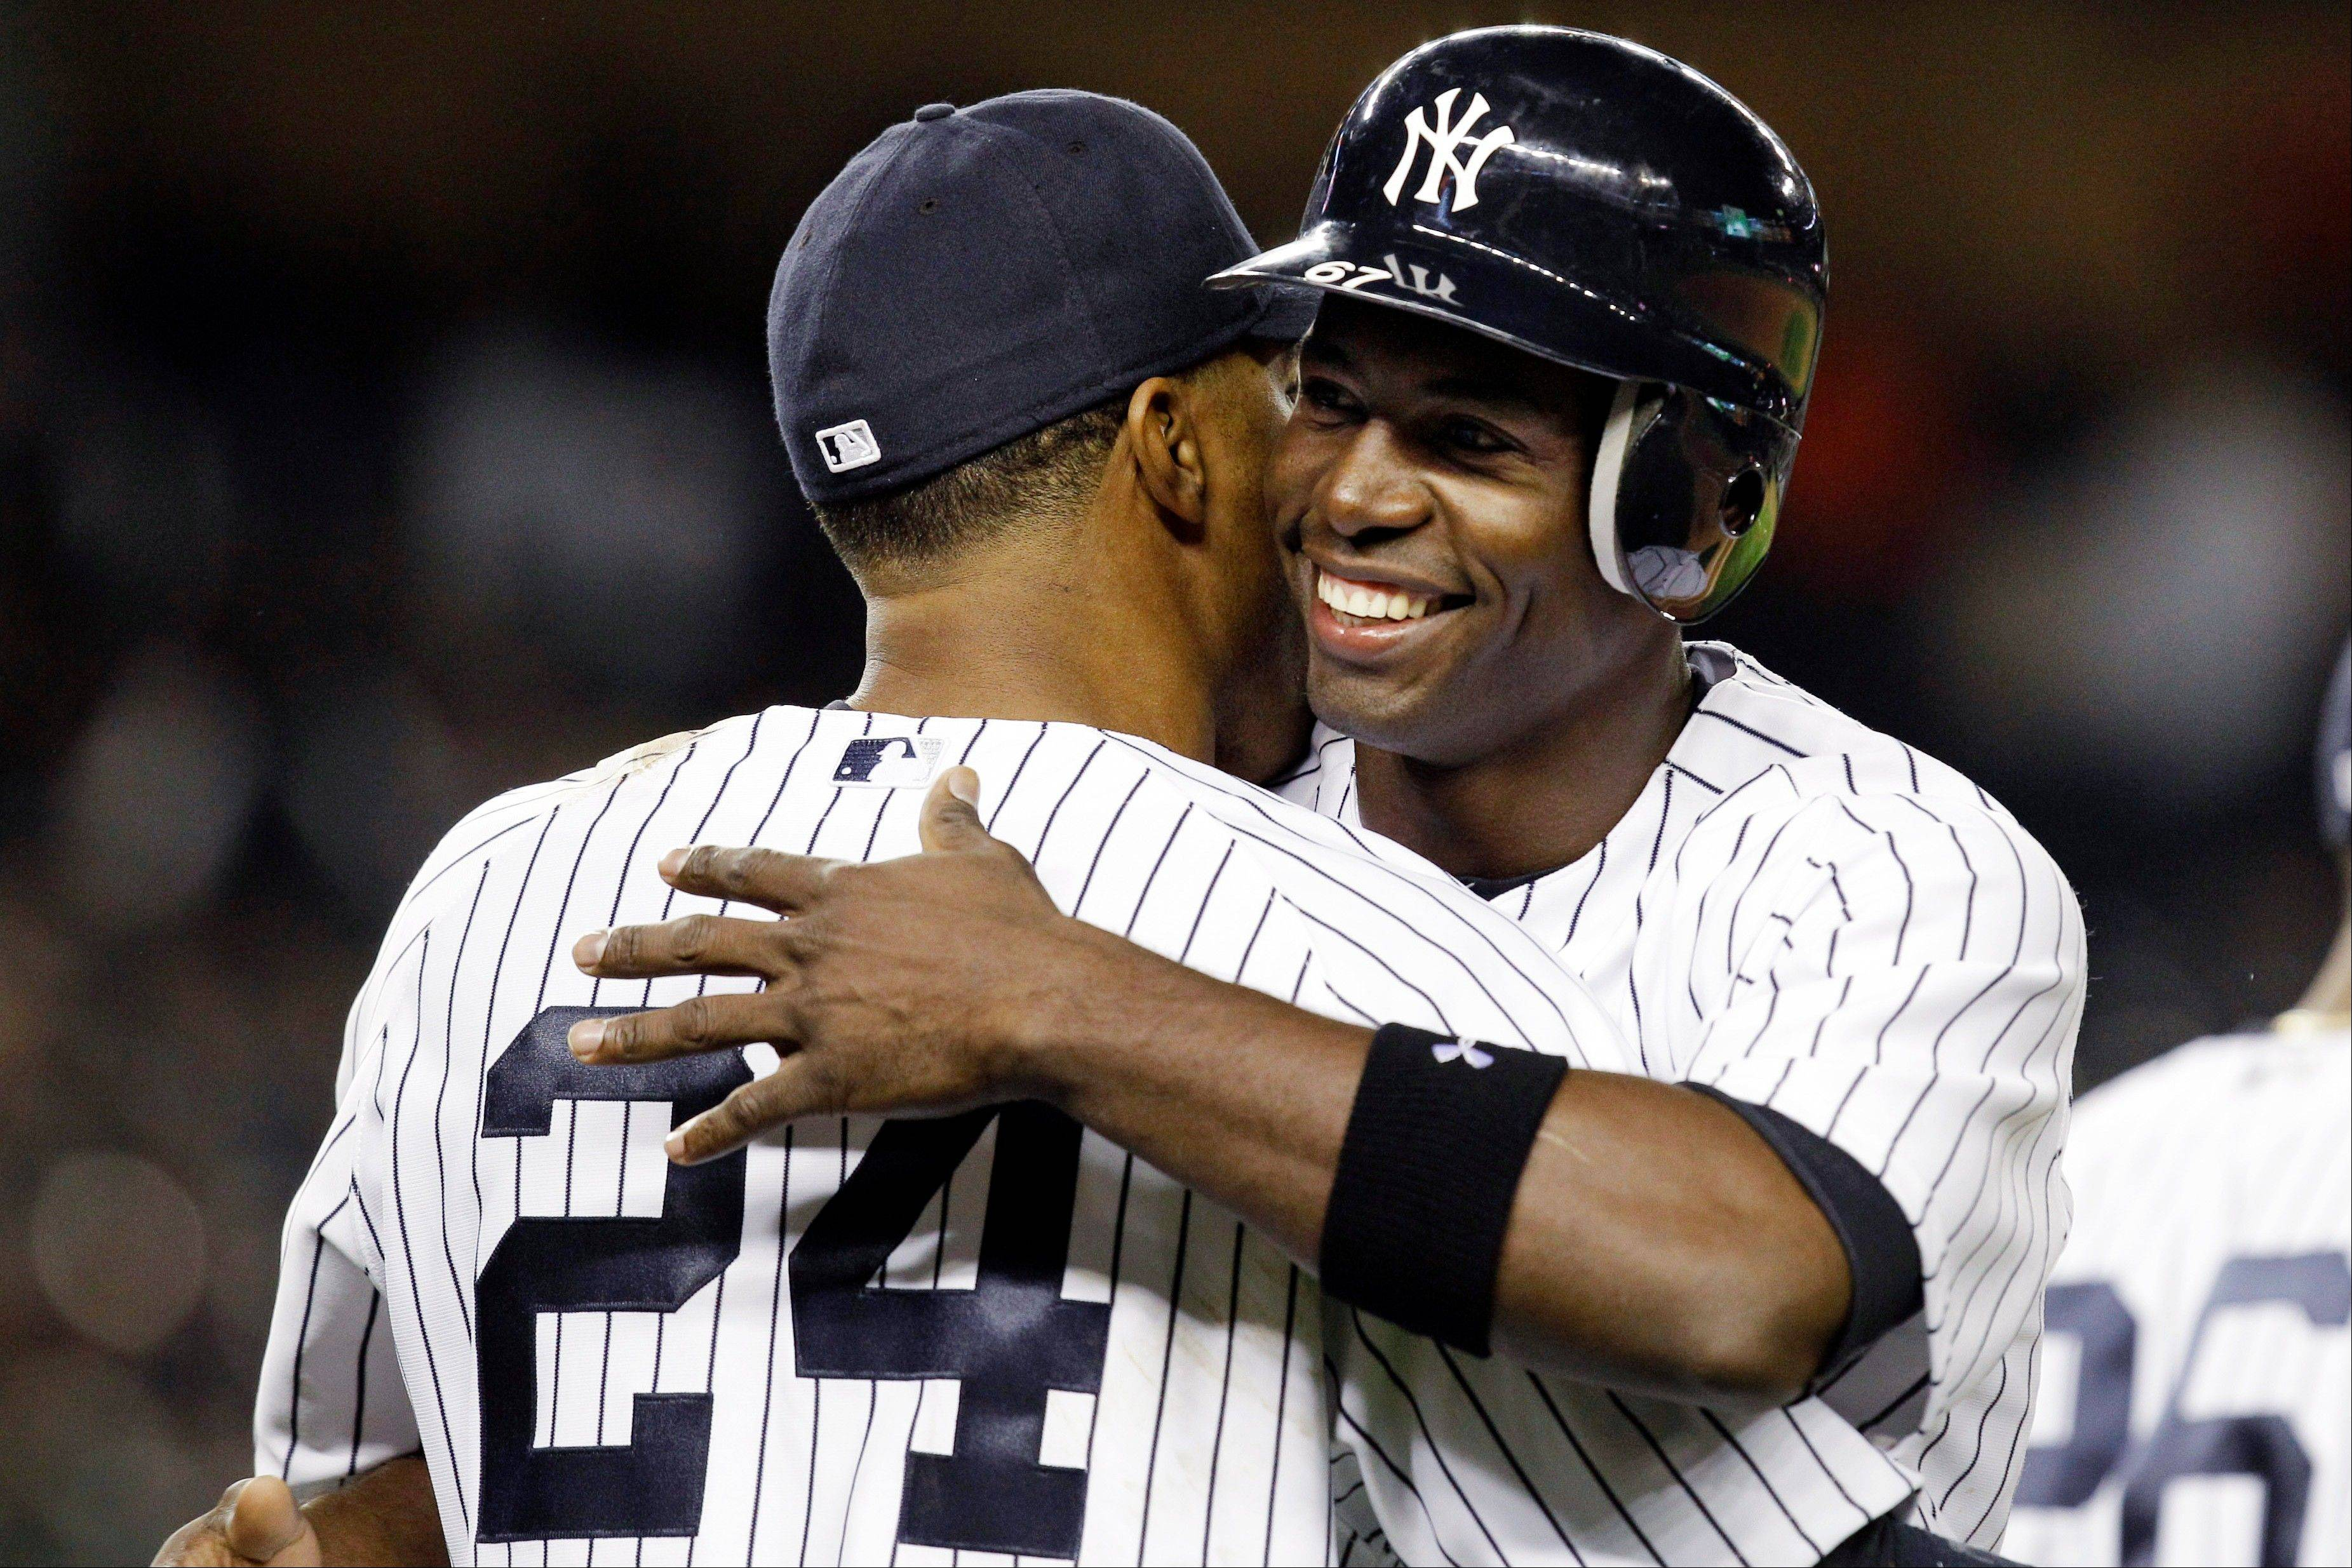 The Yankees� Robinson Cano embraces Melky Mesa after Mesa drove in a run on his first major-league hit Monday in New York.